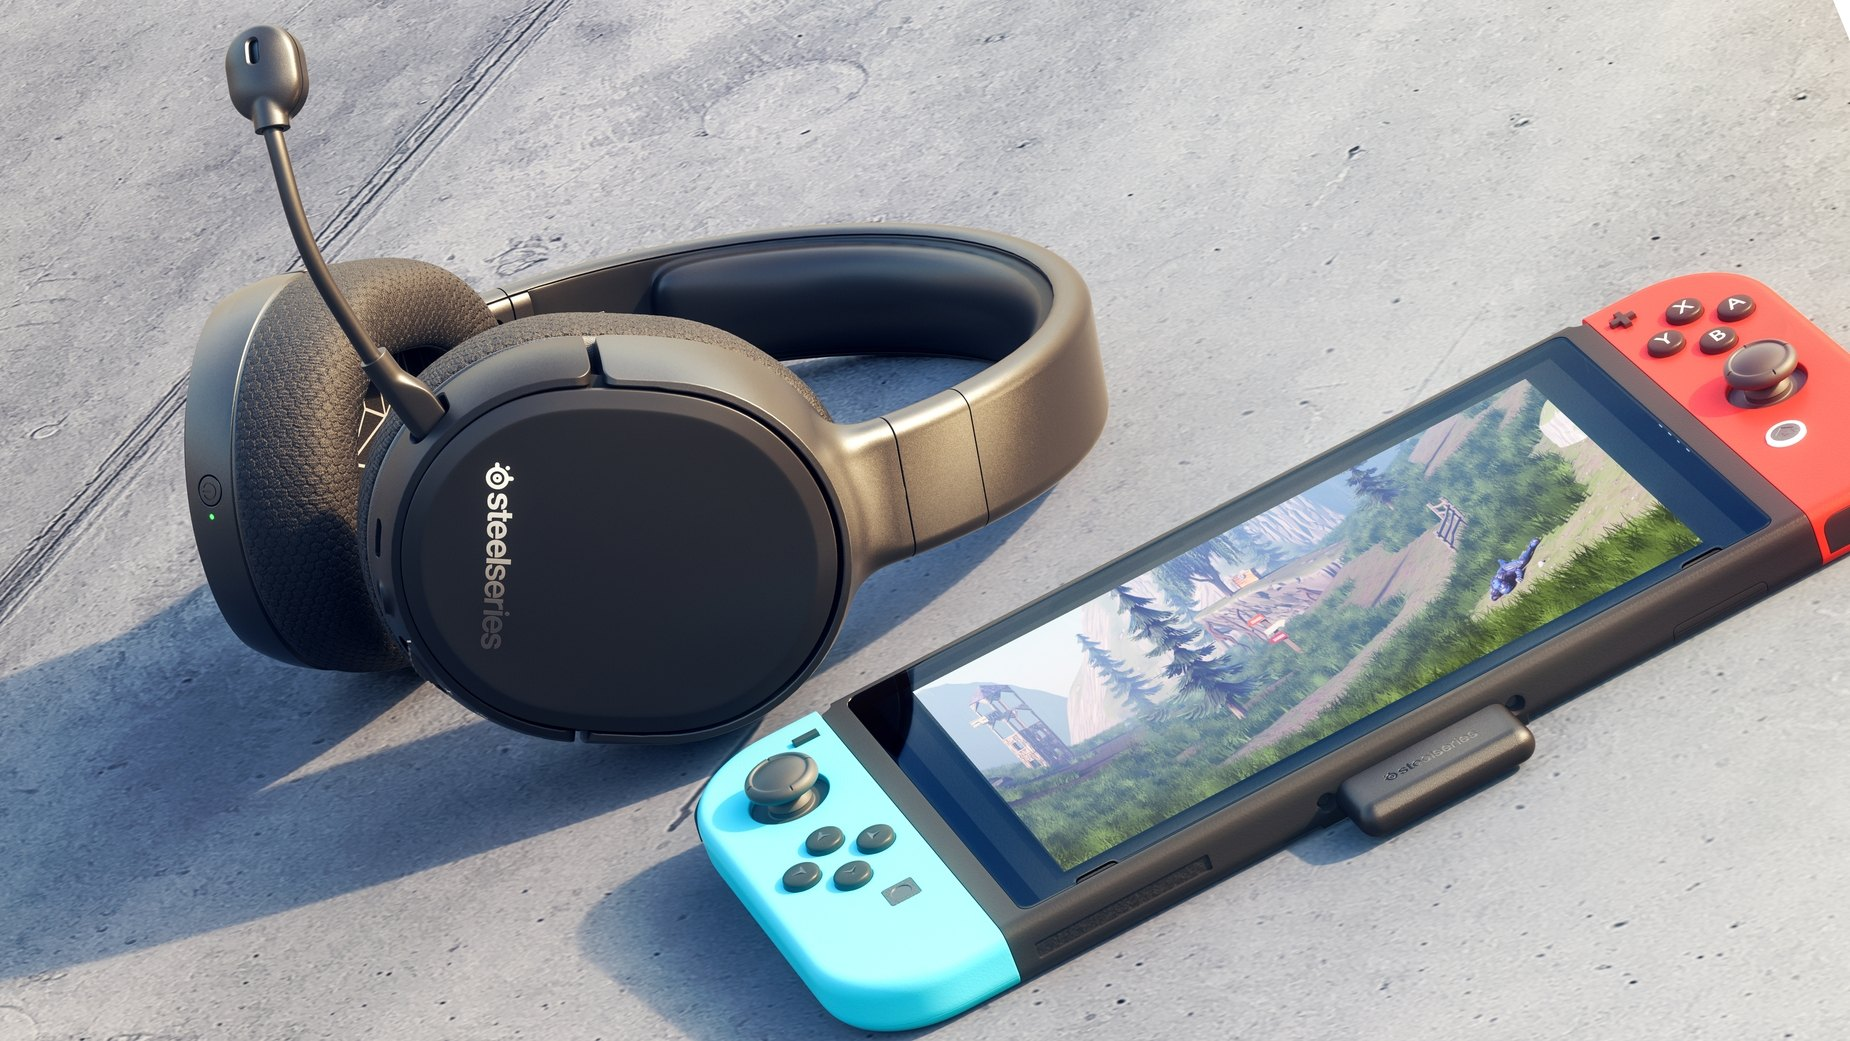 Arctis 1 Wireless for Switch gaming headset on surface next to a Swtich, connected via the wireless dongle.